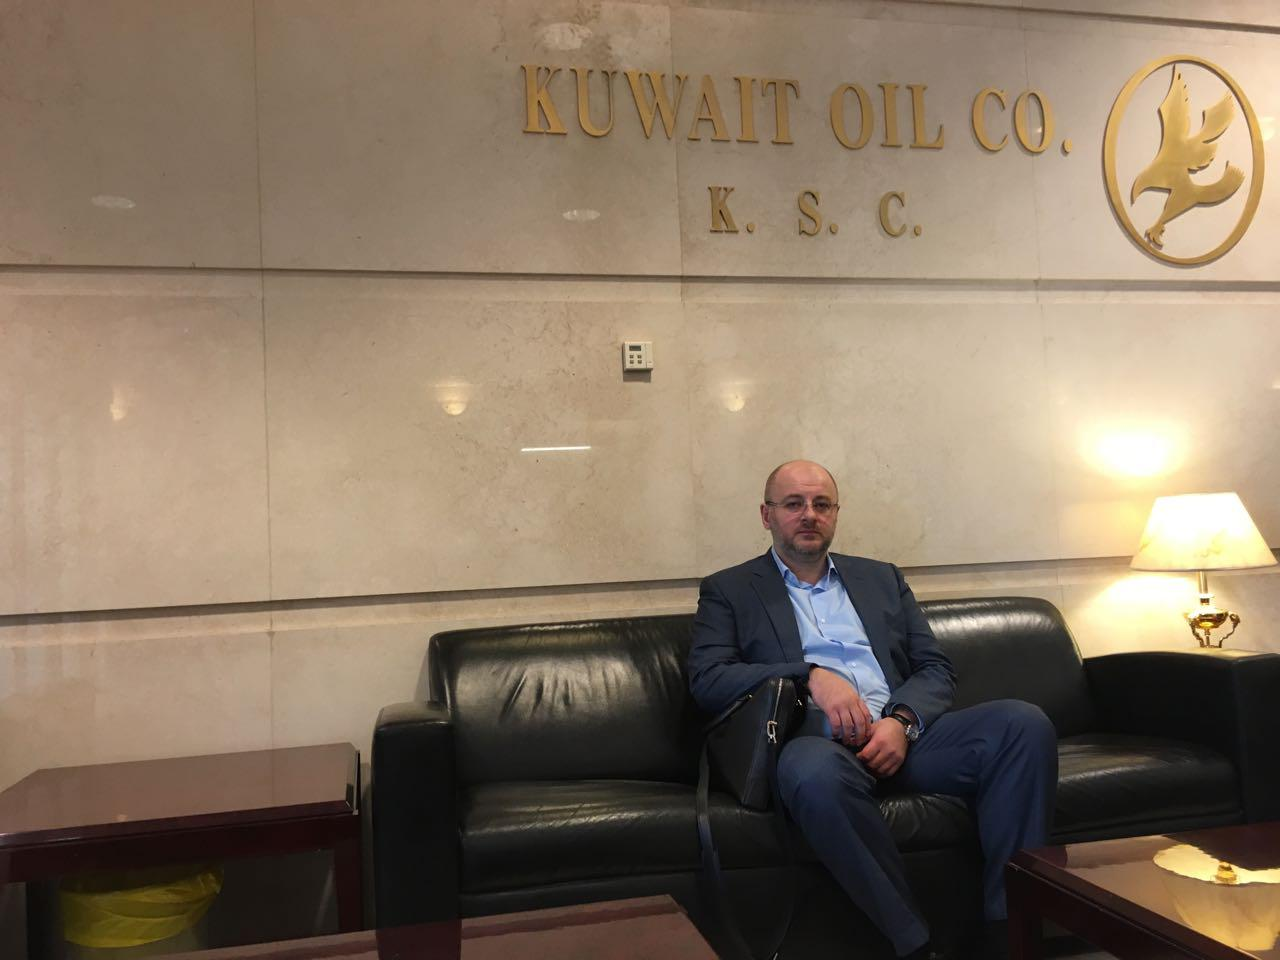 Working meeting with Kuwait Oil Company